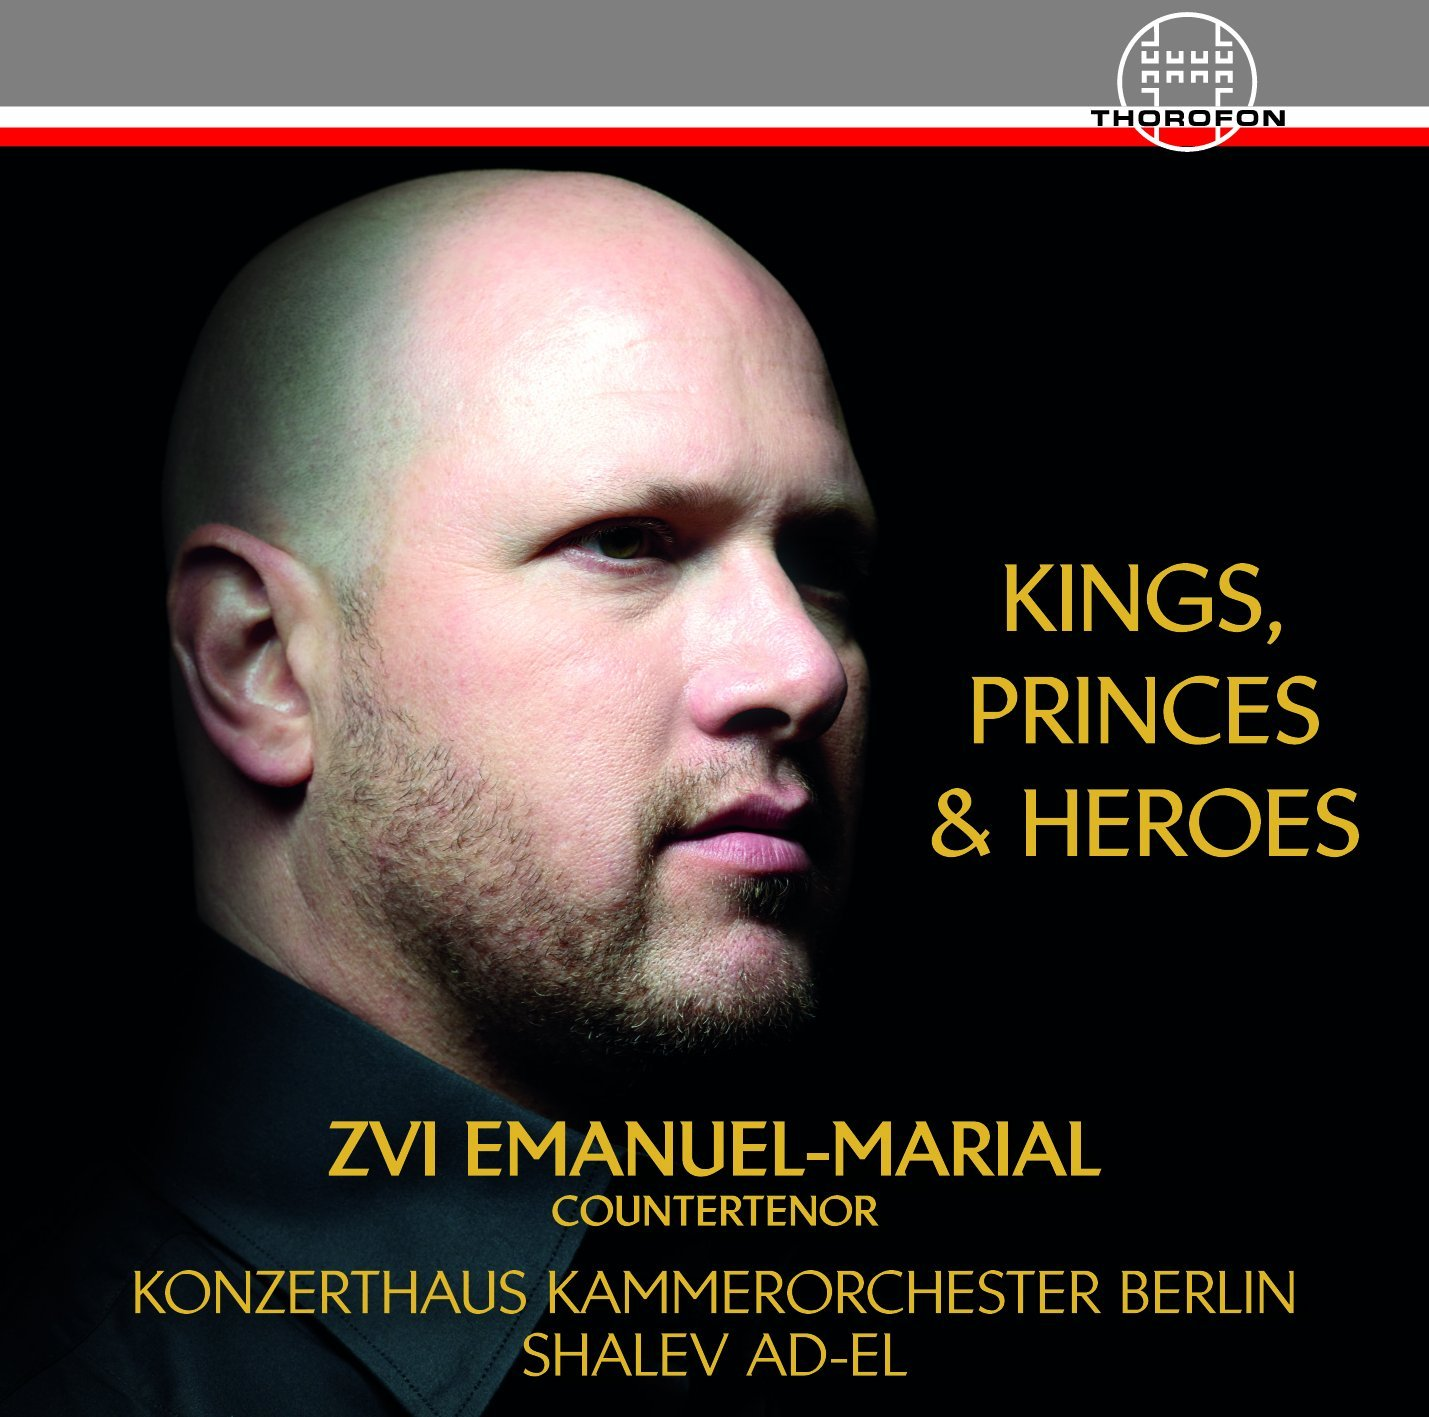 CD REVIEW: G. F. Händel, C. W. Gluck, & W. A. Mozart - KINGS, PRINCES & HEROES (Zvi Emanuel-Marial, countertenor; Thorofon CTH2622)